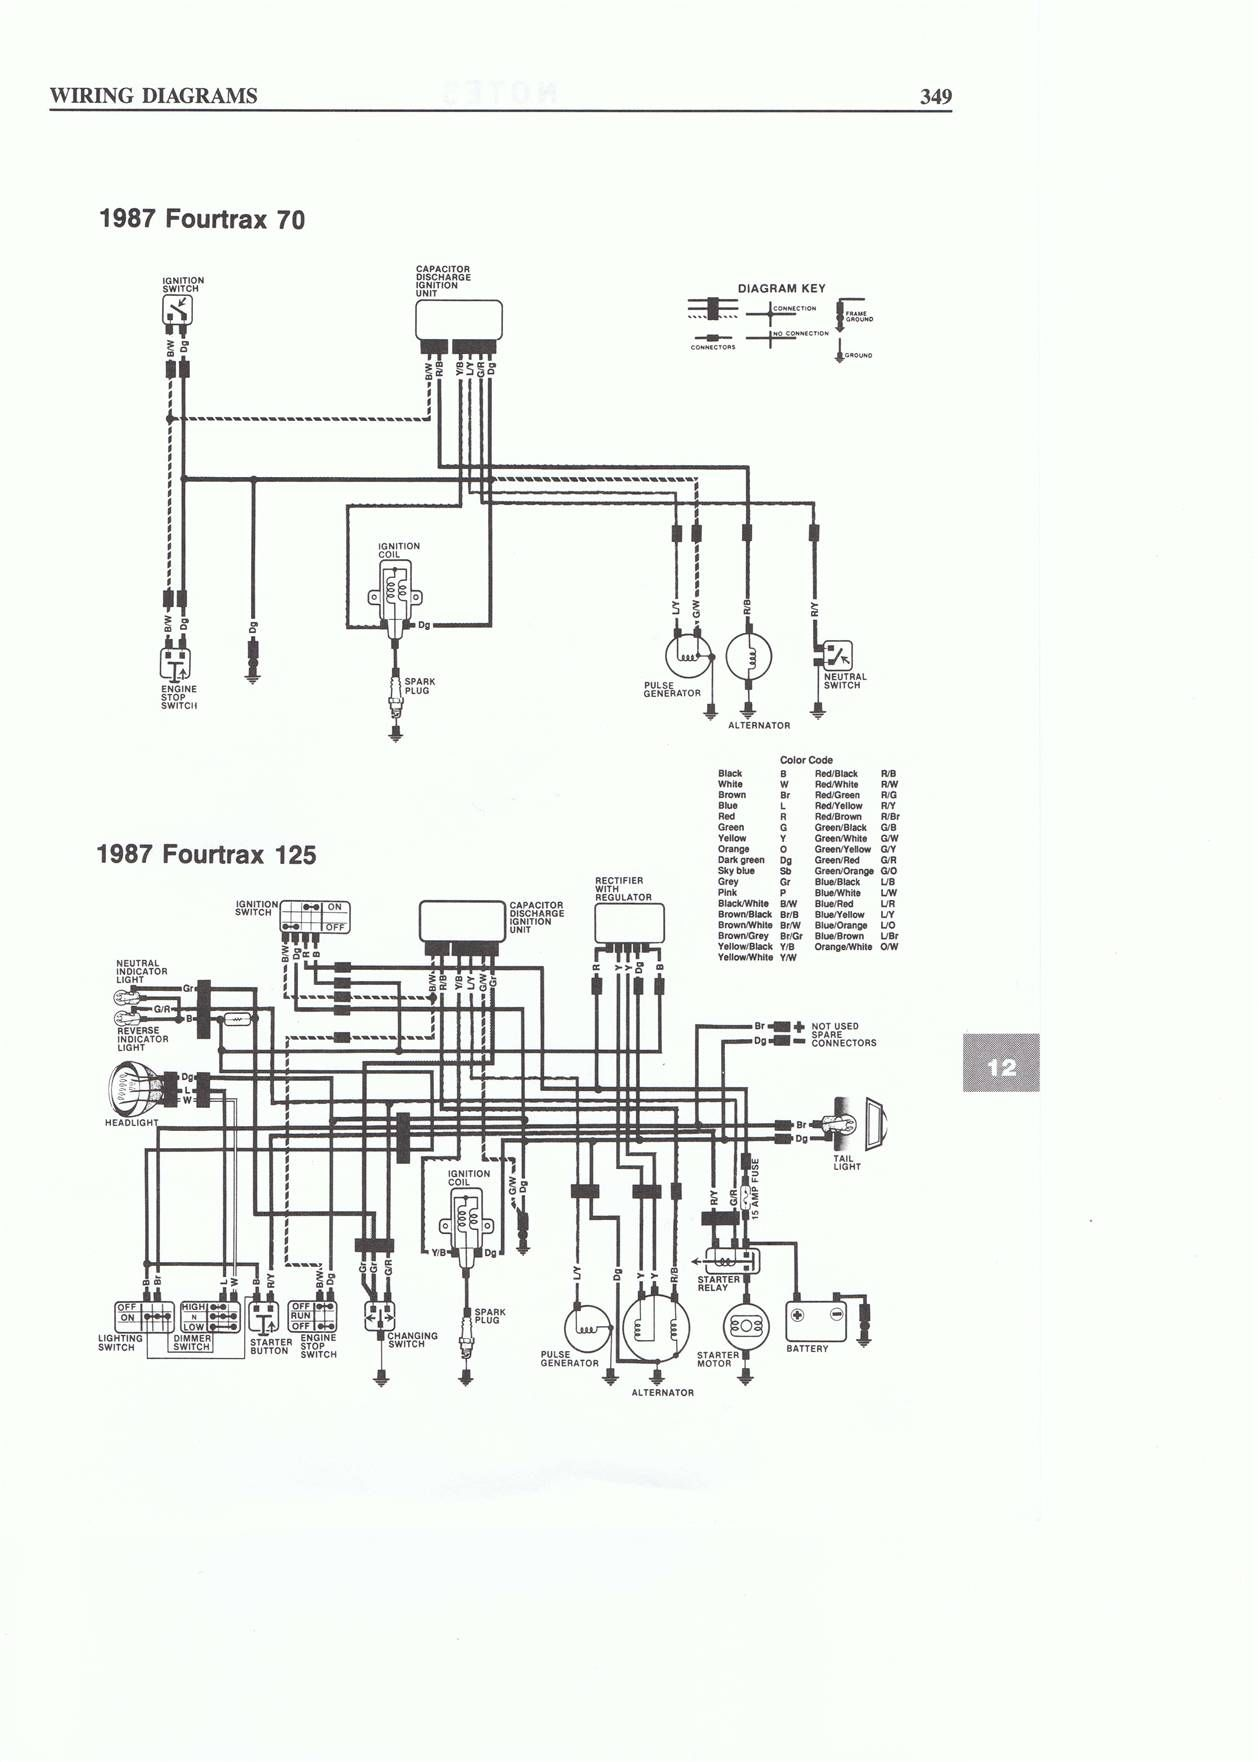 gy6 engine wiring diagram jpg diy and crafts pinterest engine rh pinterest com gy6 engine diagram manual gy6 engine wiring diagram